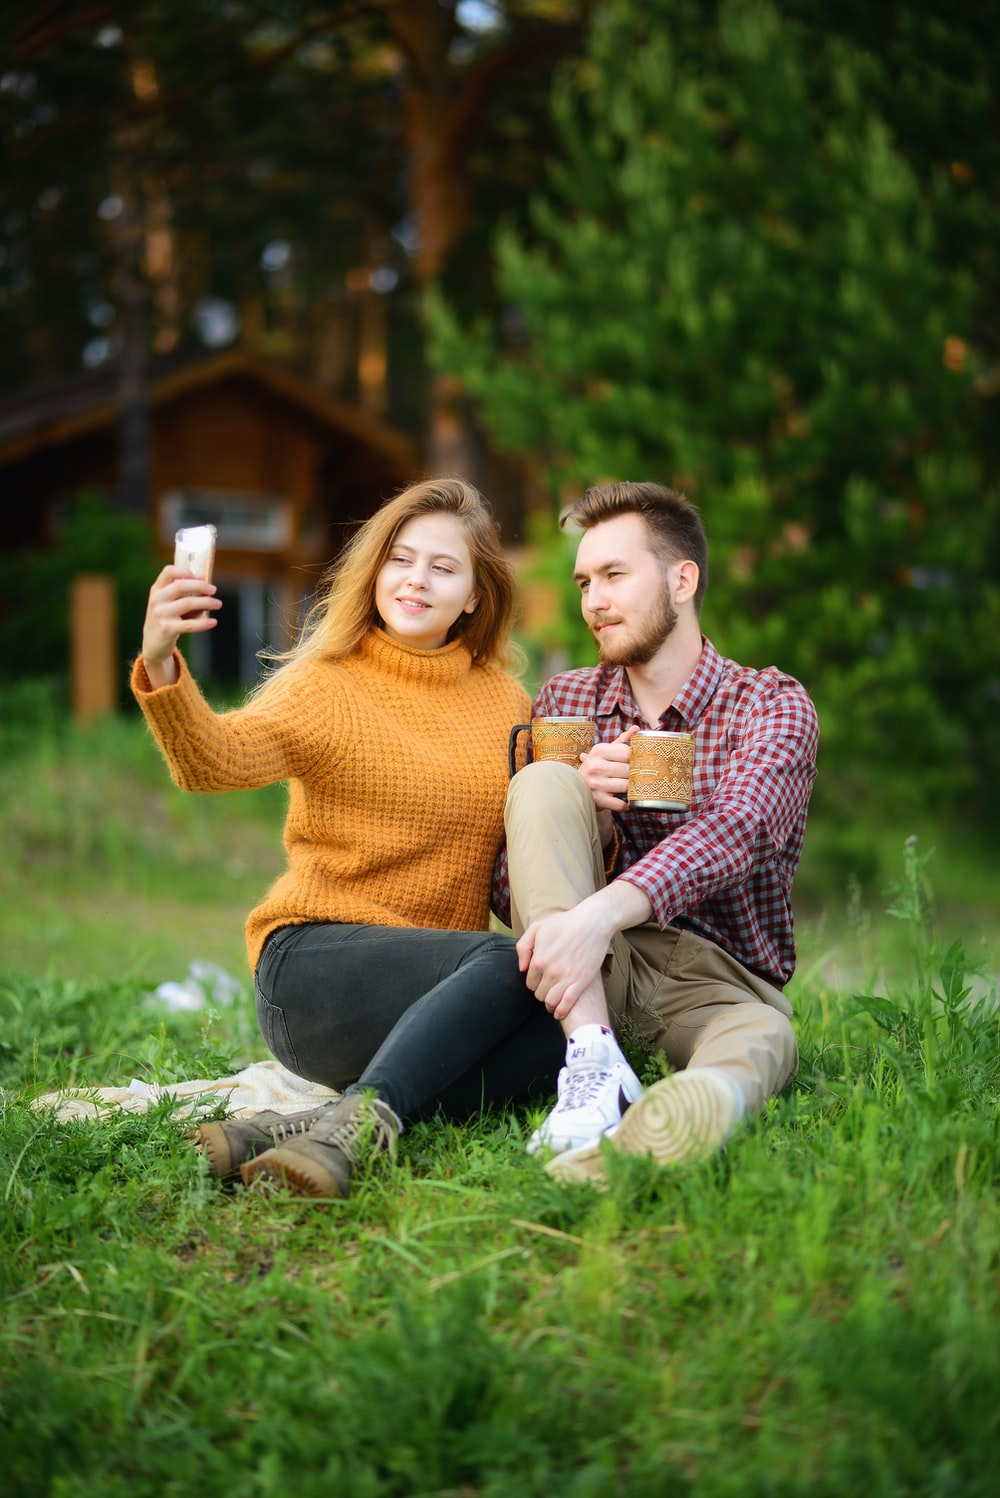 woman taking photo of man and woman